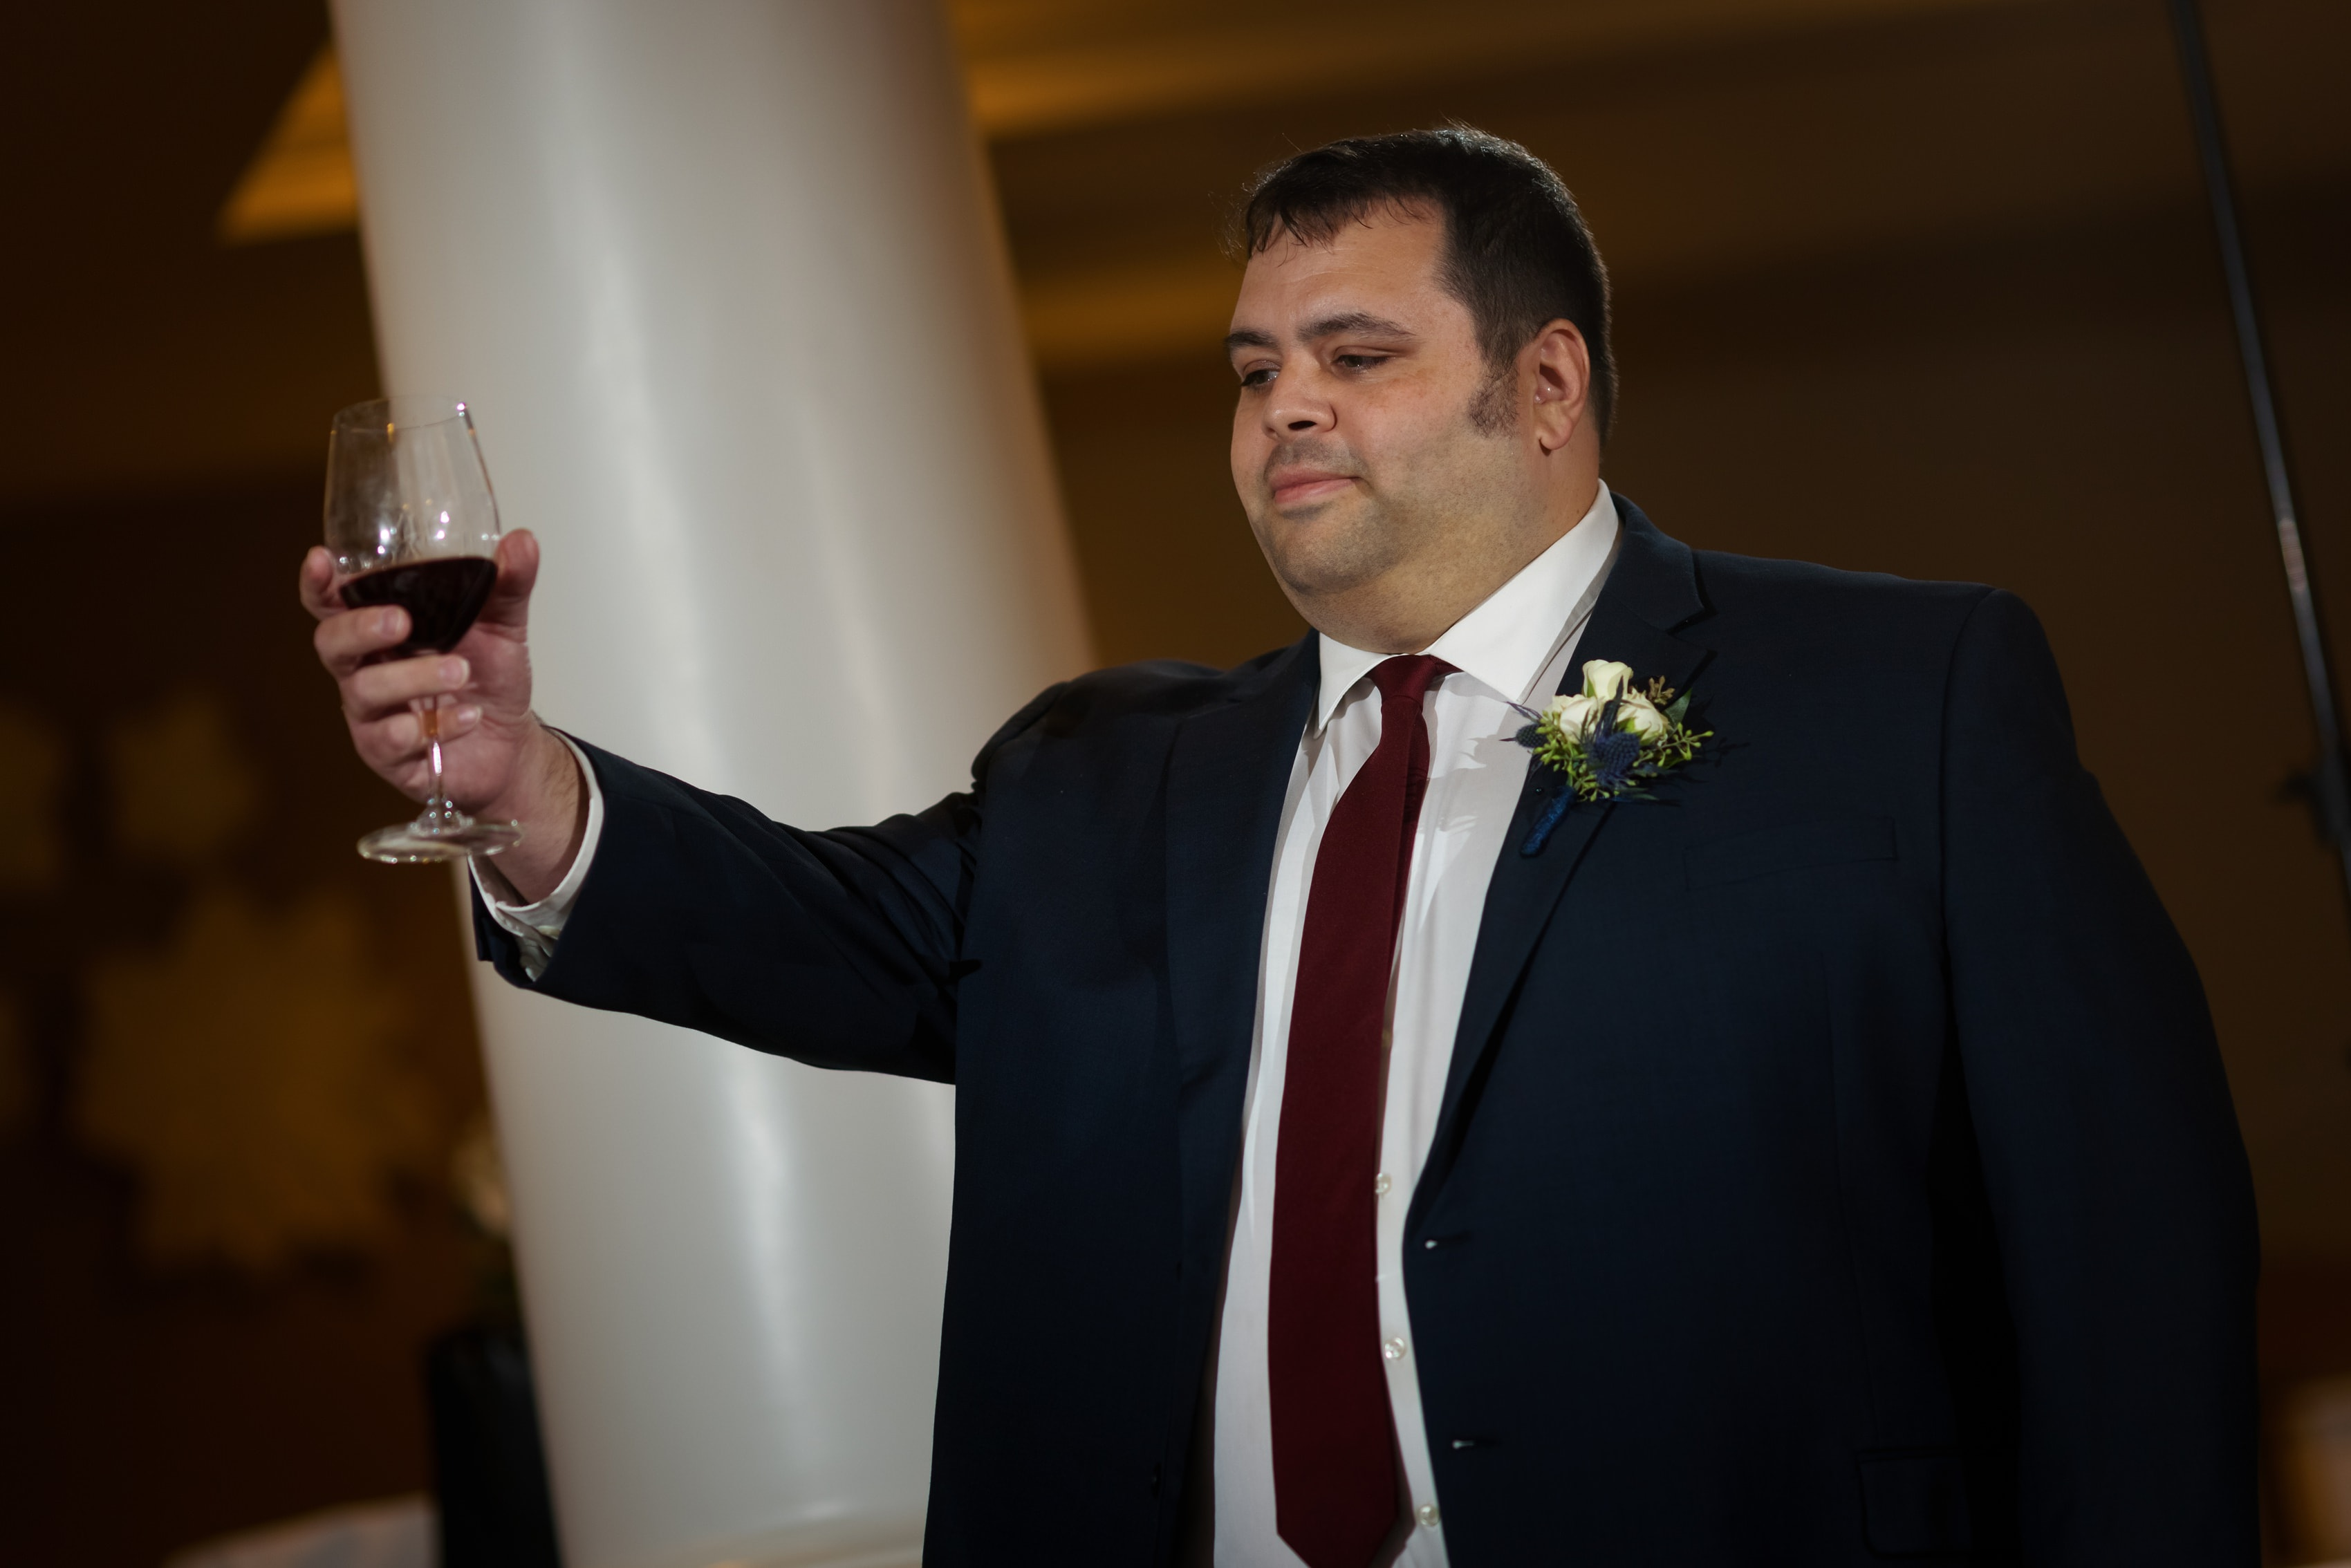 Best man gives toast during wedding reception at Bay Harbor Inn in Petoskey, Michigan